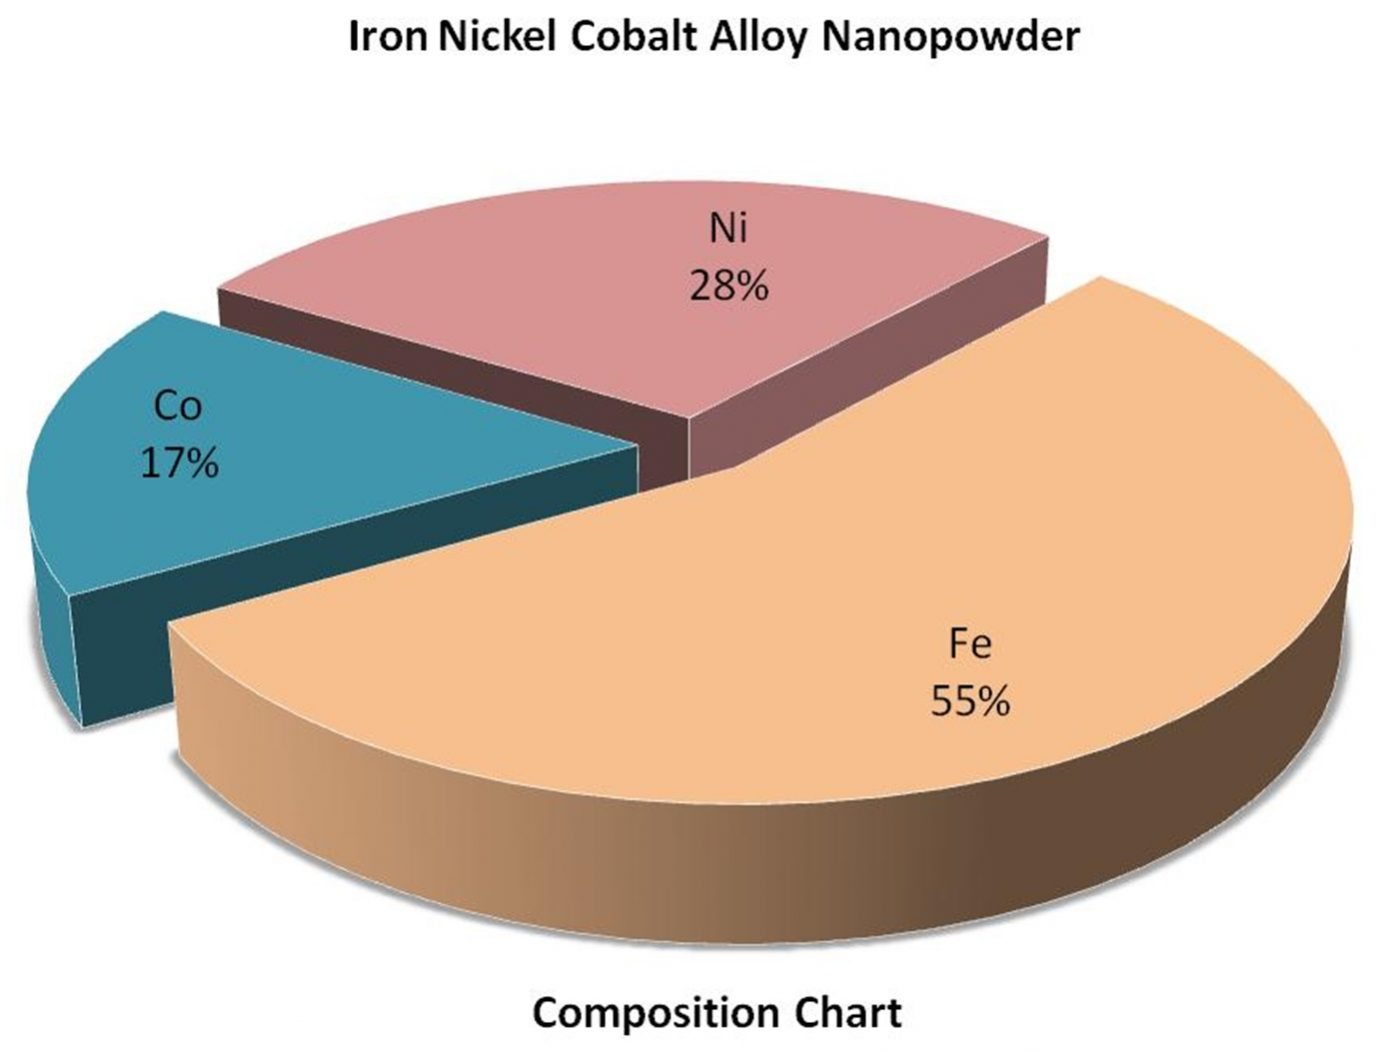 Iron Nickel Cobalt Alloy Nanopowder